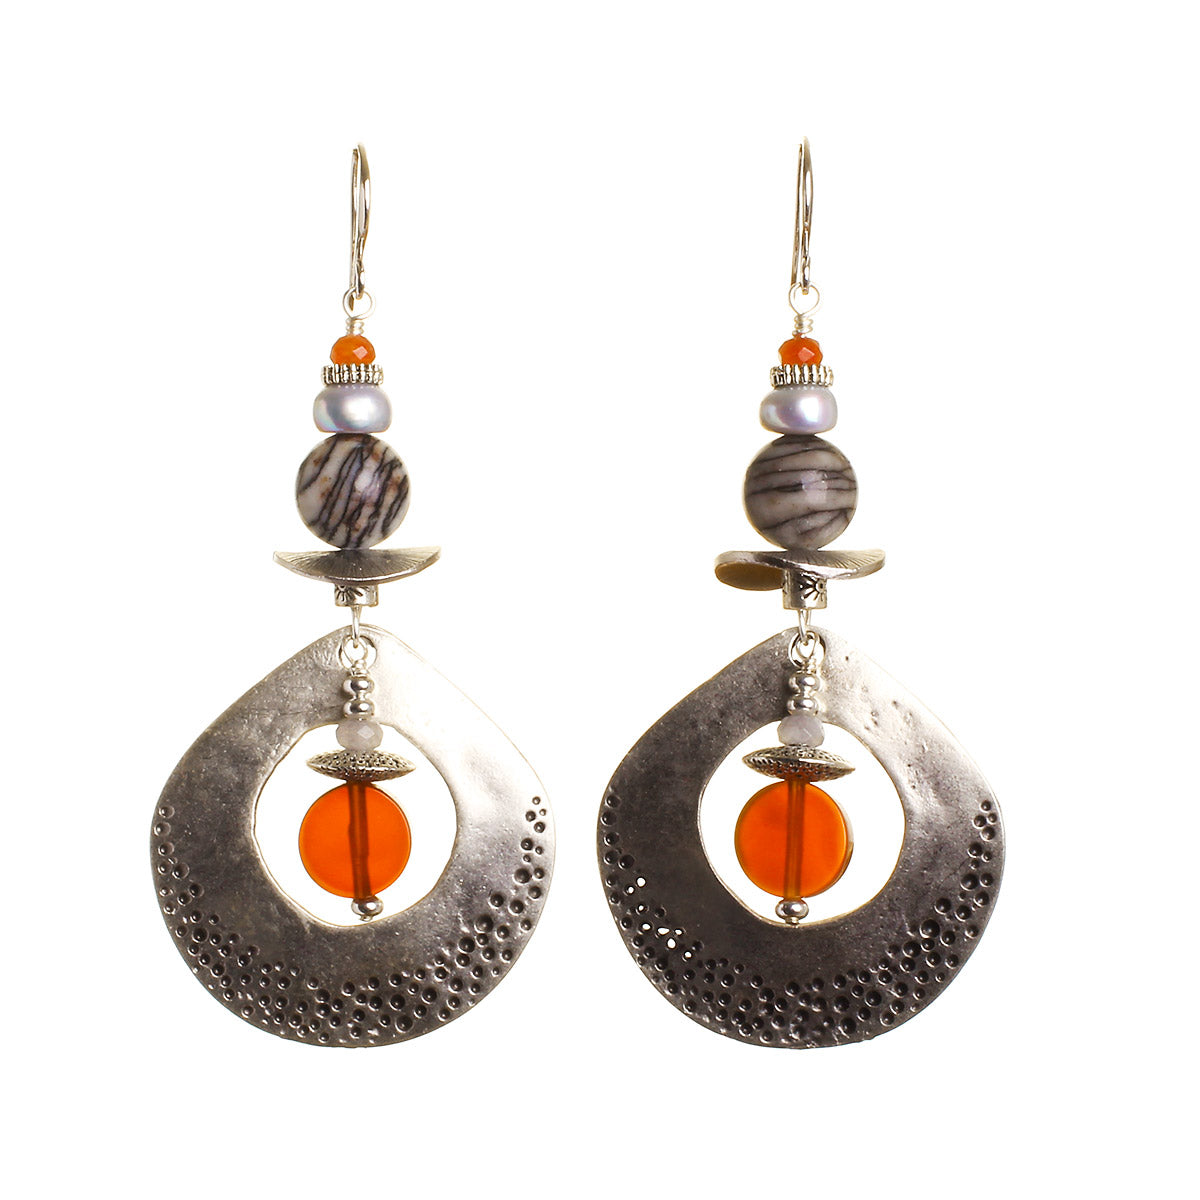 N°466 The Fossil Council of the Soul Statement Earrings